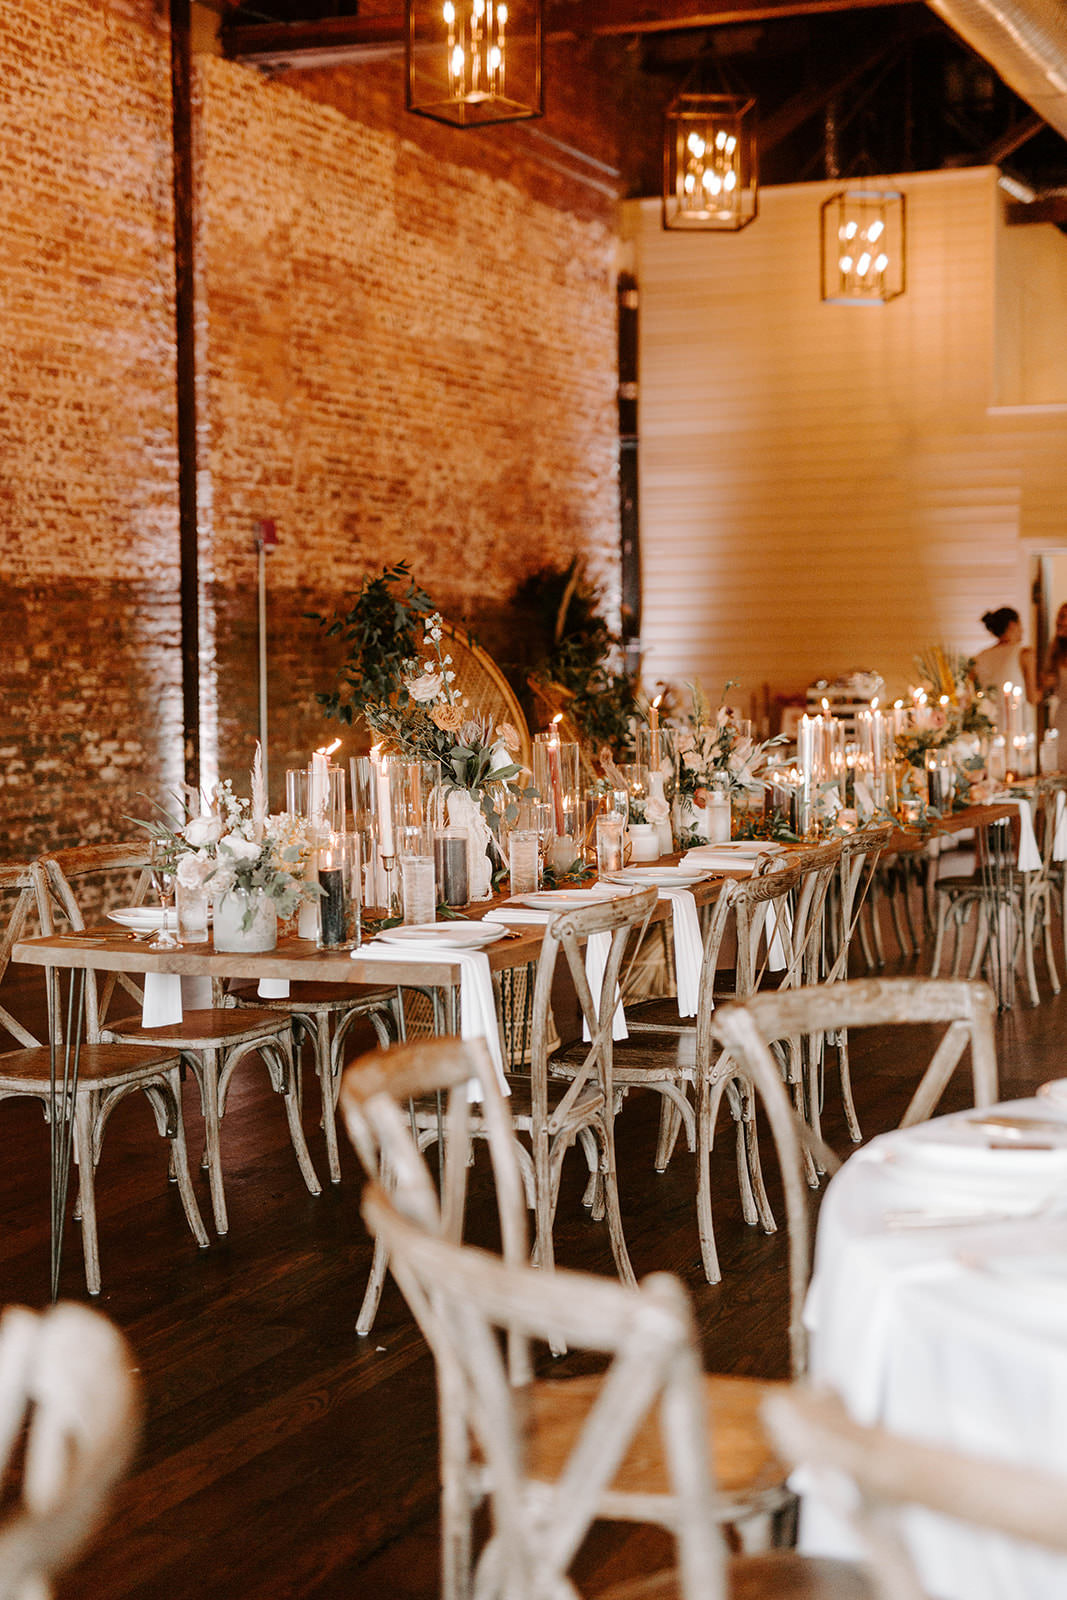 Boho Whimsical Wedding Reception Decor, Long Wooden Feasting Table with Floral Arrangements and Hurricane Glass Candle Holders, Wooden Crossback Chairs   Tampa Bay Wedding Planner Coastal Coordinating   Industrial Wedding Venue Armature Works